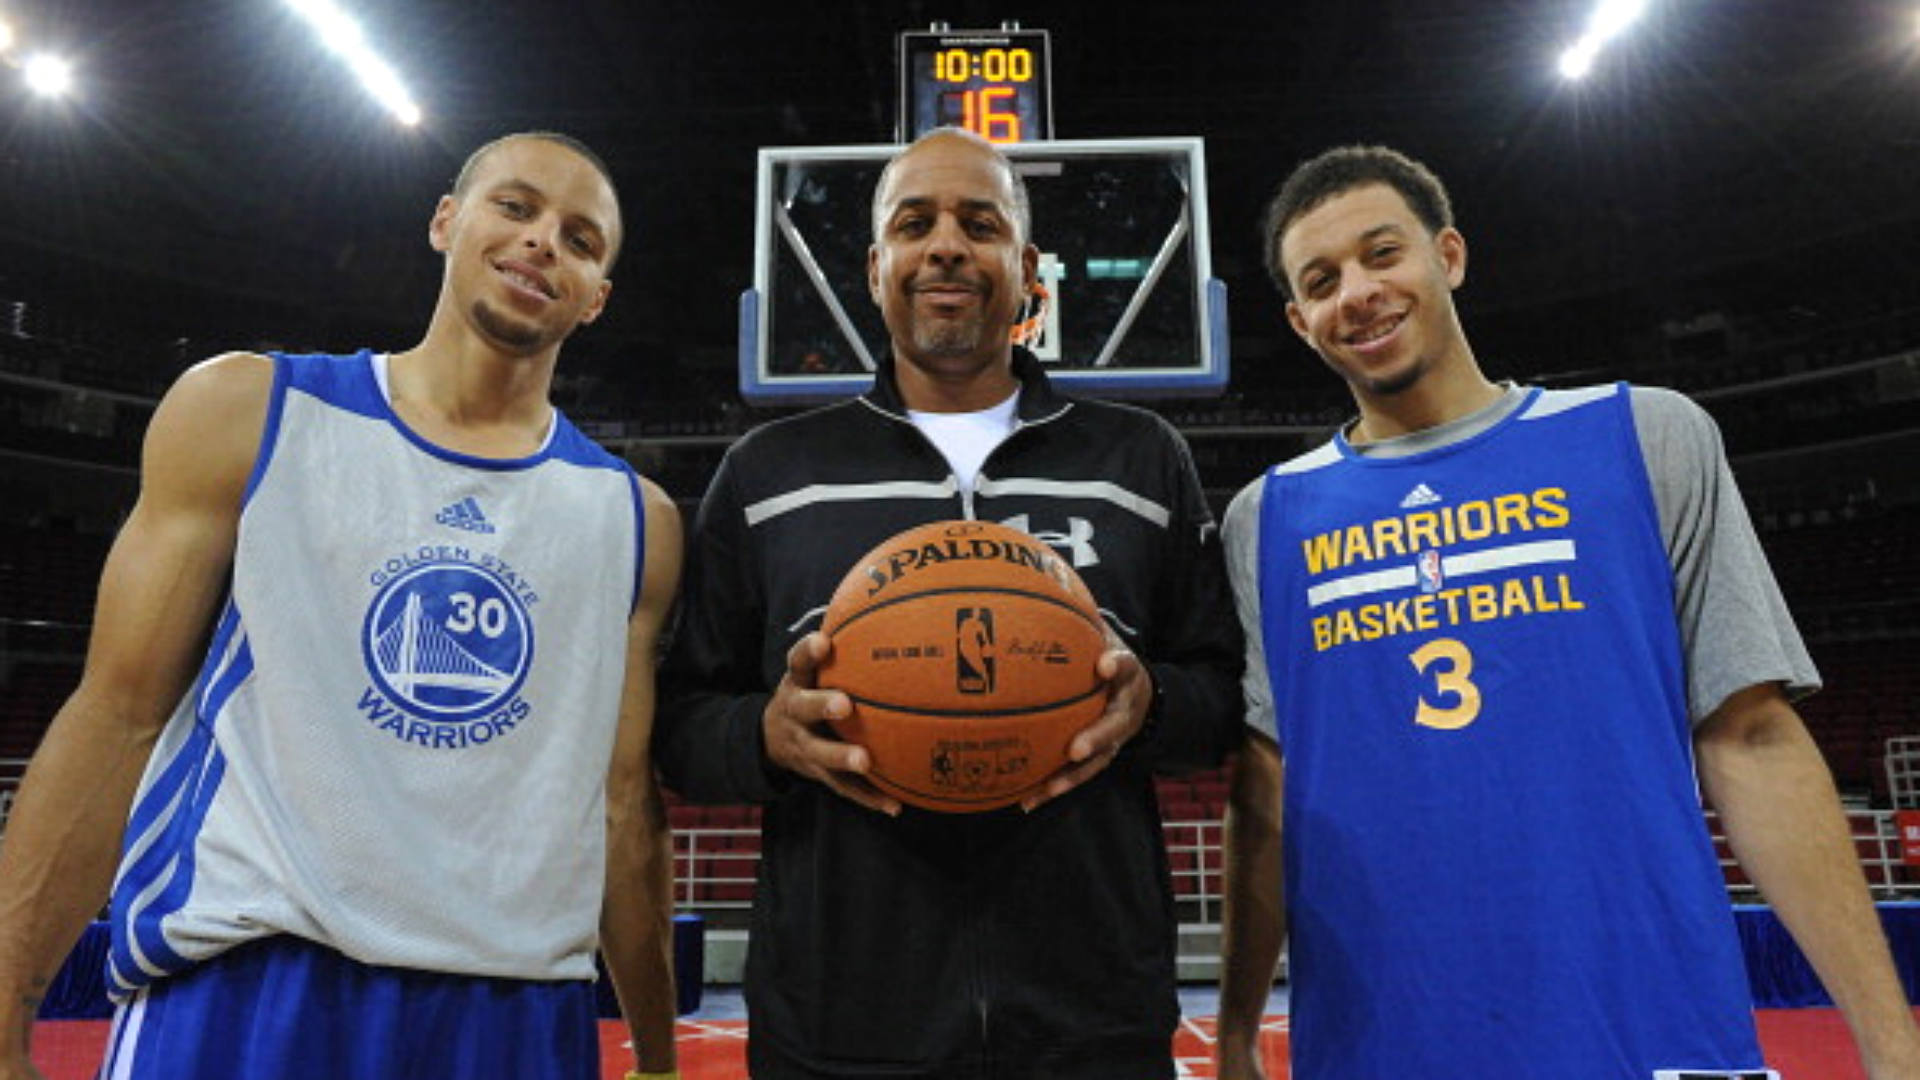 Dell Curry dellcurry091914ftrgettyjpg10o7817xk1vi51s5vkrsms4k53jpgt1795040224